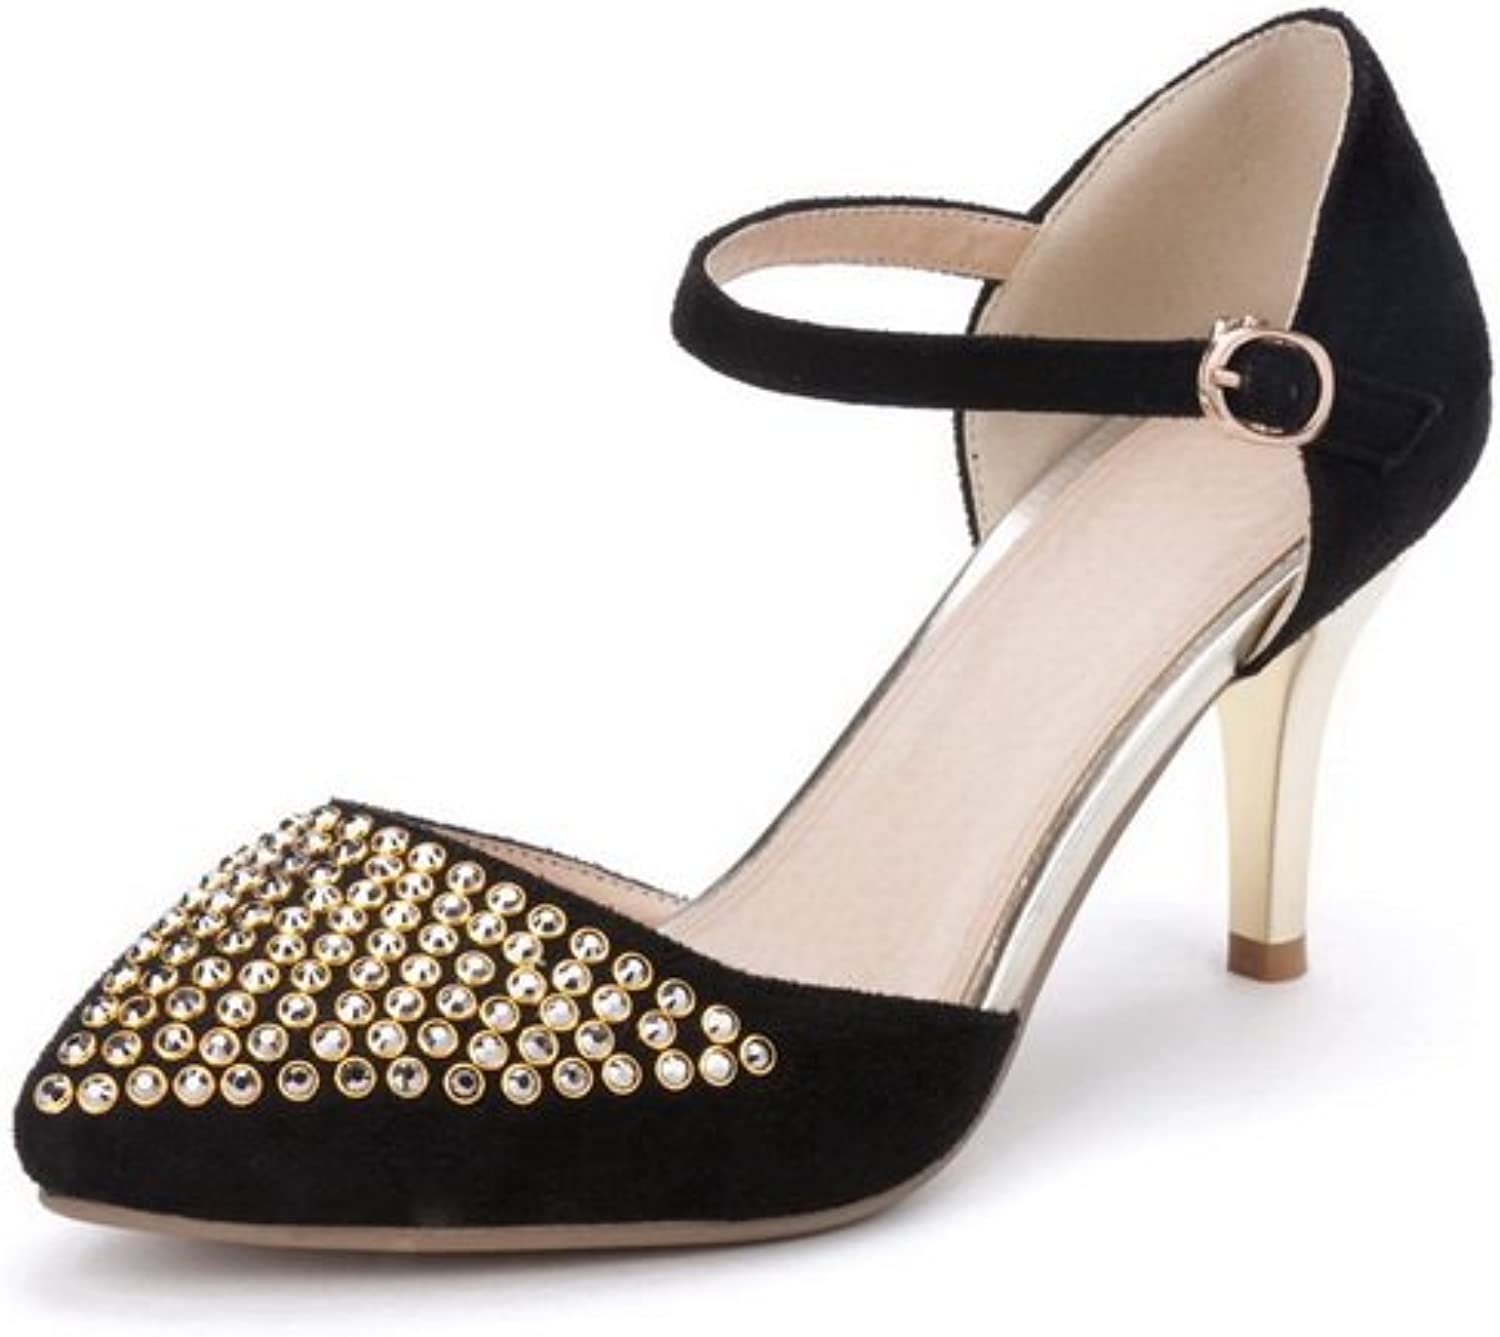 1TO9 Ladies Studded Rivet Pointed-Toe Black Frosted Sandals - 7.5 B(M) US